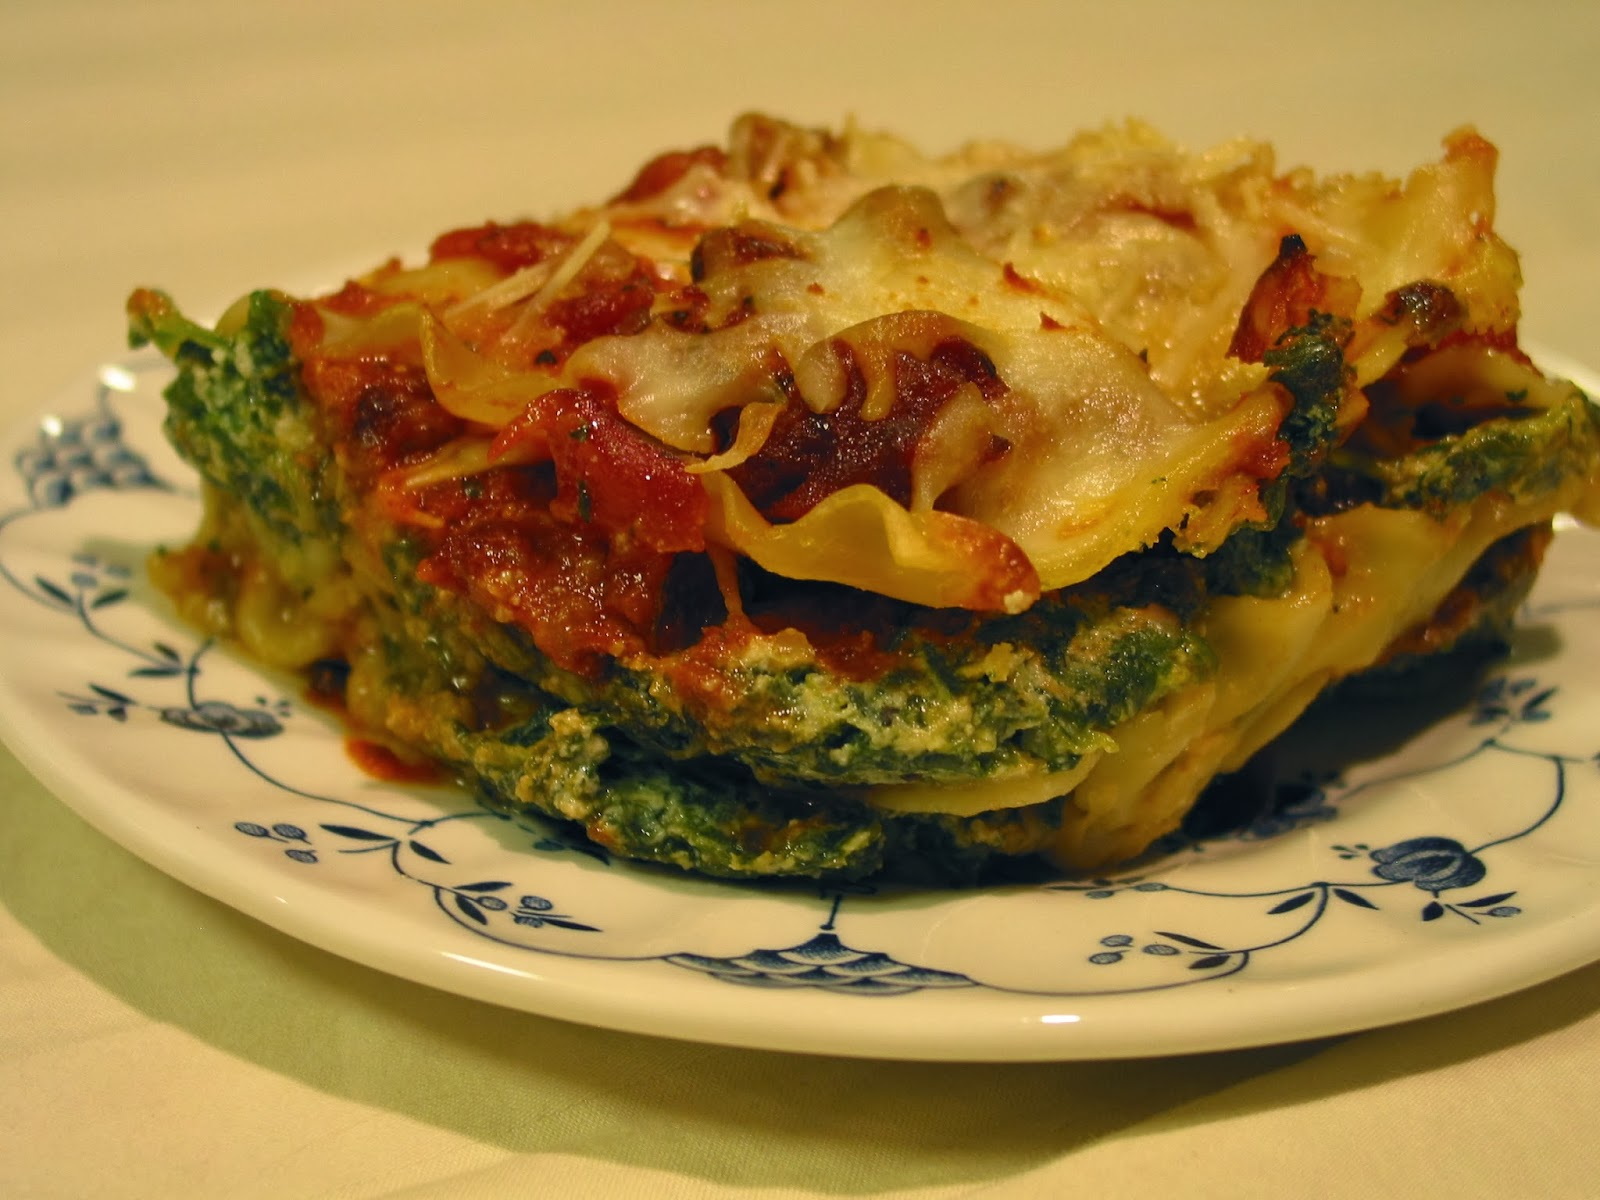 the experimental cook 101: Spinach Lasagna With Italian Sausage